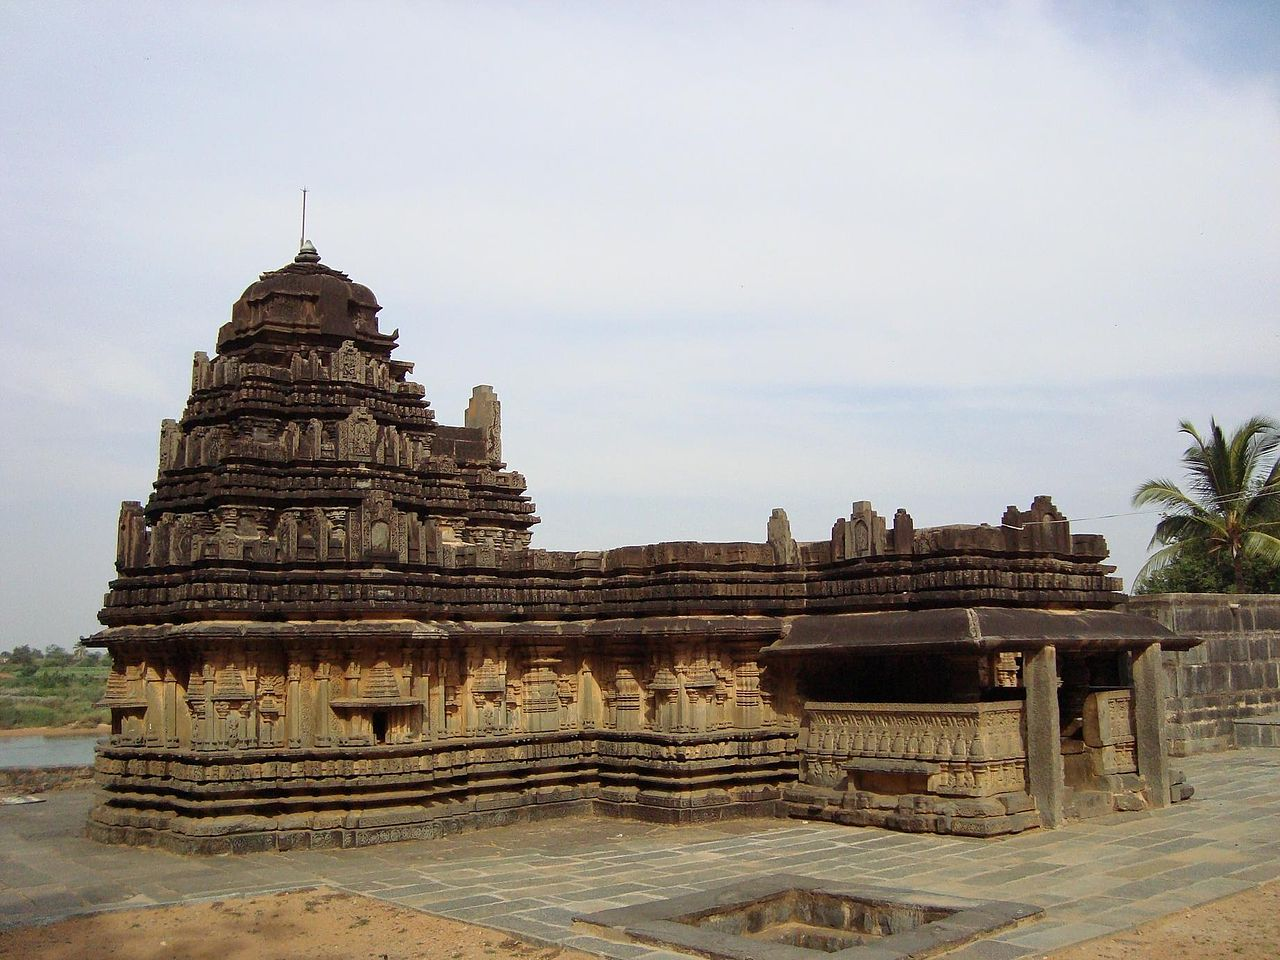 Best Time To Visit The Mukteswara Temple